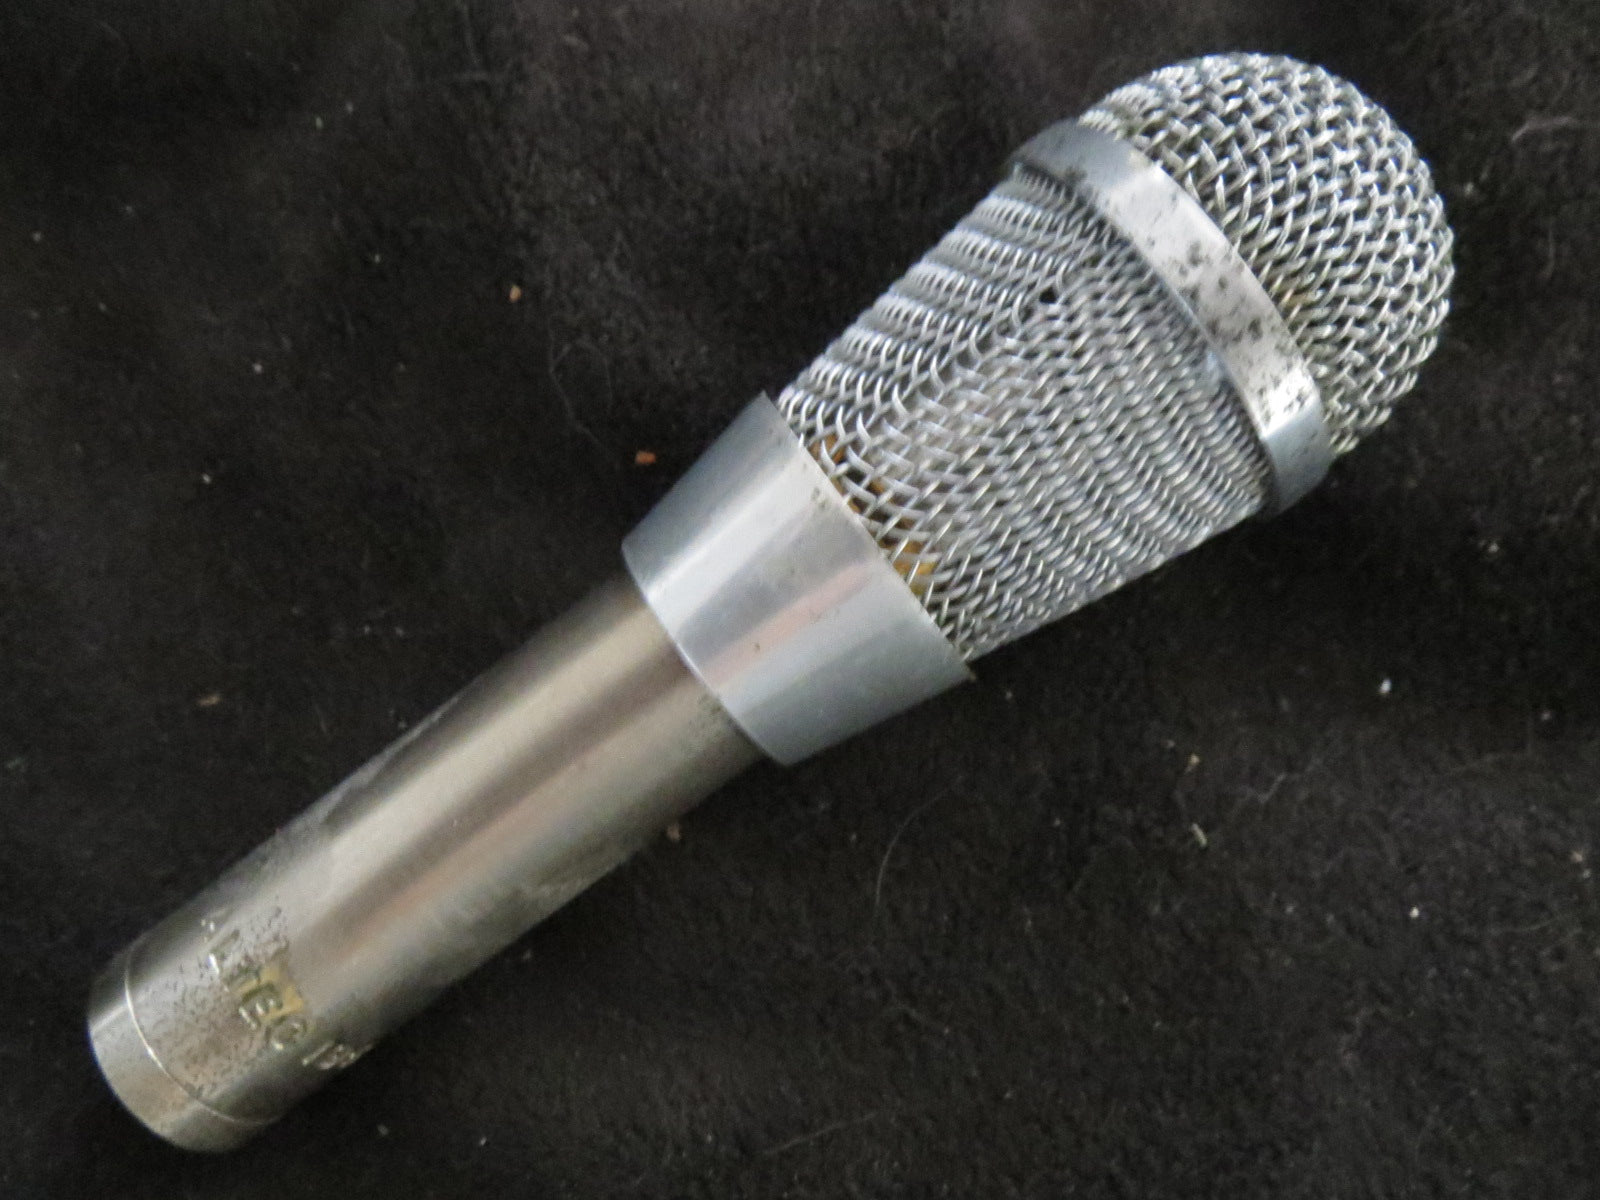 ALTEC 195A RARE VINTAGE CARDIOID CONDENSER MICROPHONE WITH XLR CONNECTOR